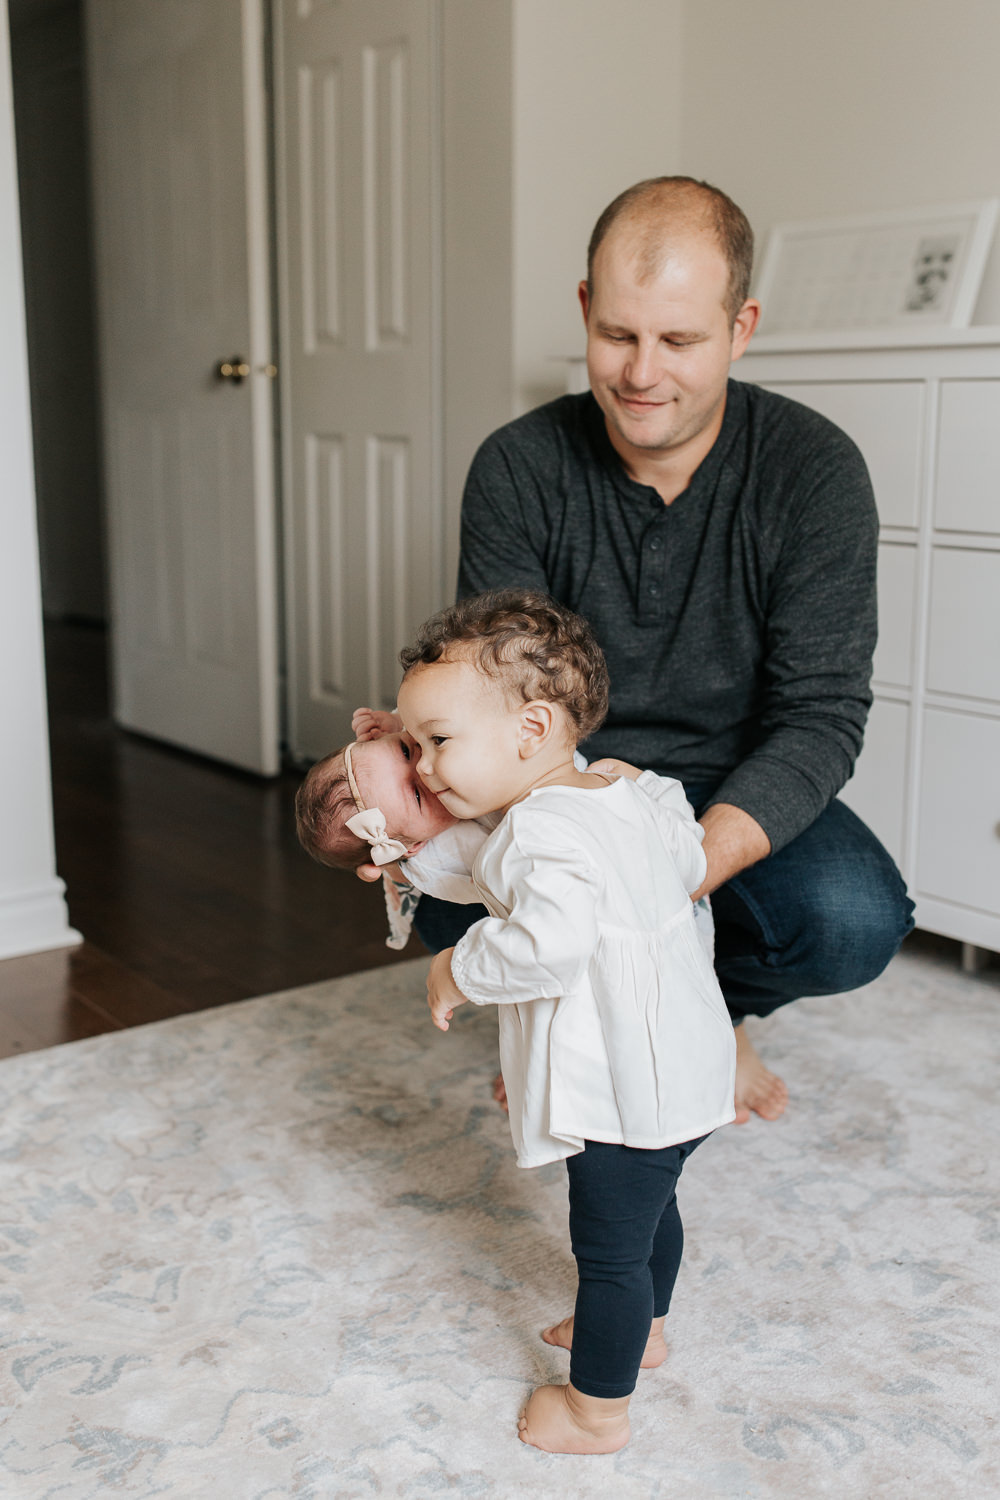 dad holding 2 week old baby girl in his arms, squatting down as 1 year old toddler daughter with dark hair in white top and tights gives little sister a kiss - Barrie In-Home Photography